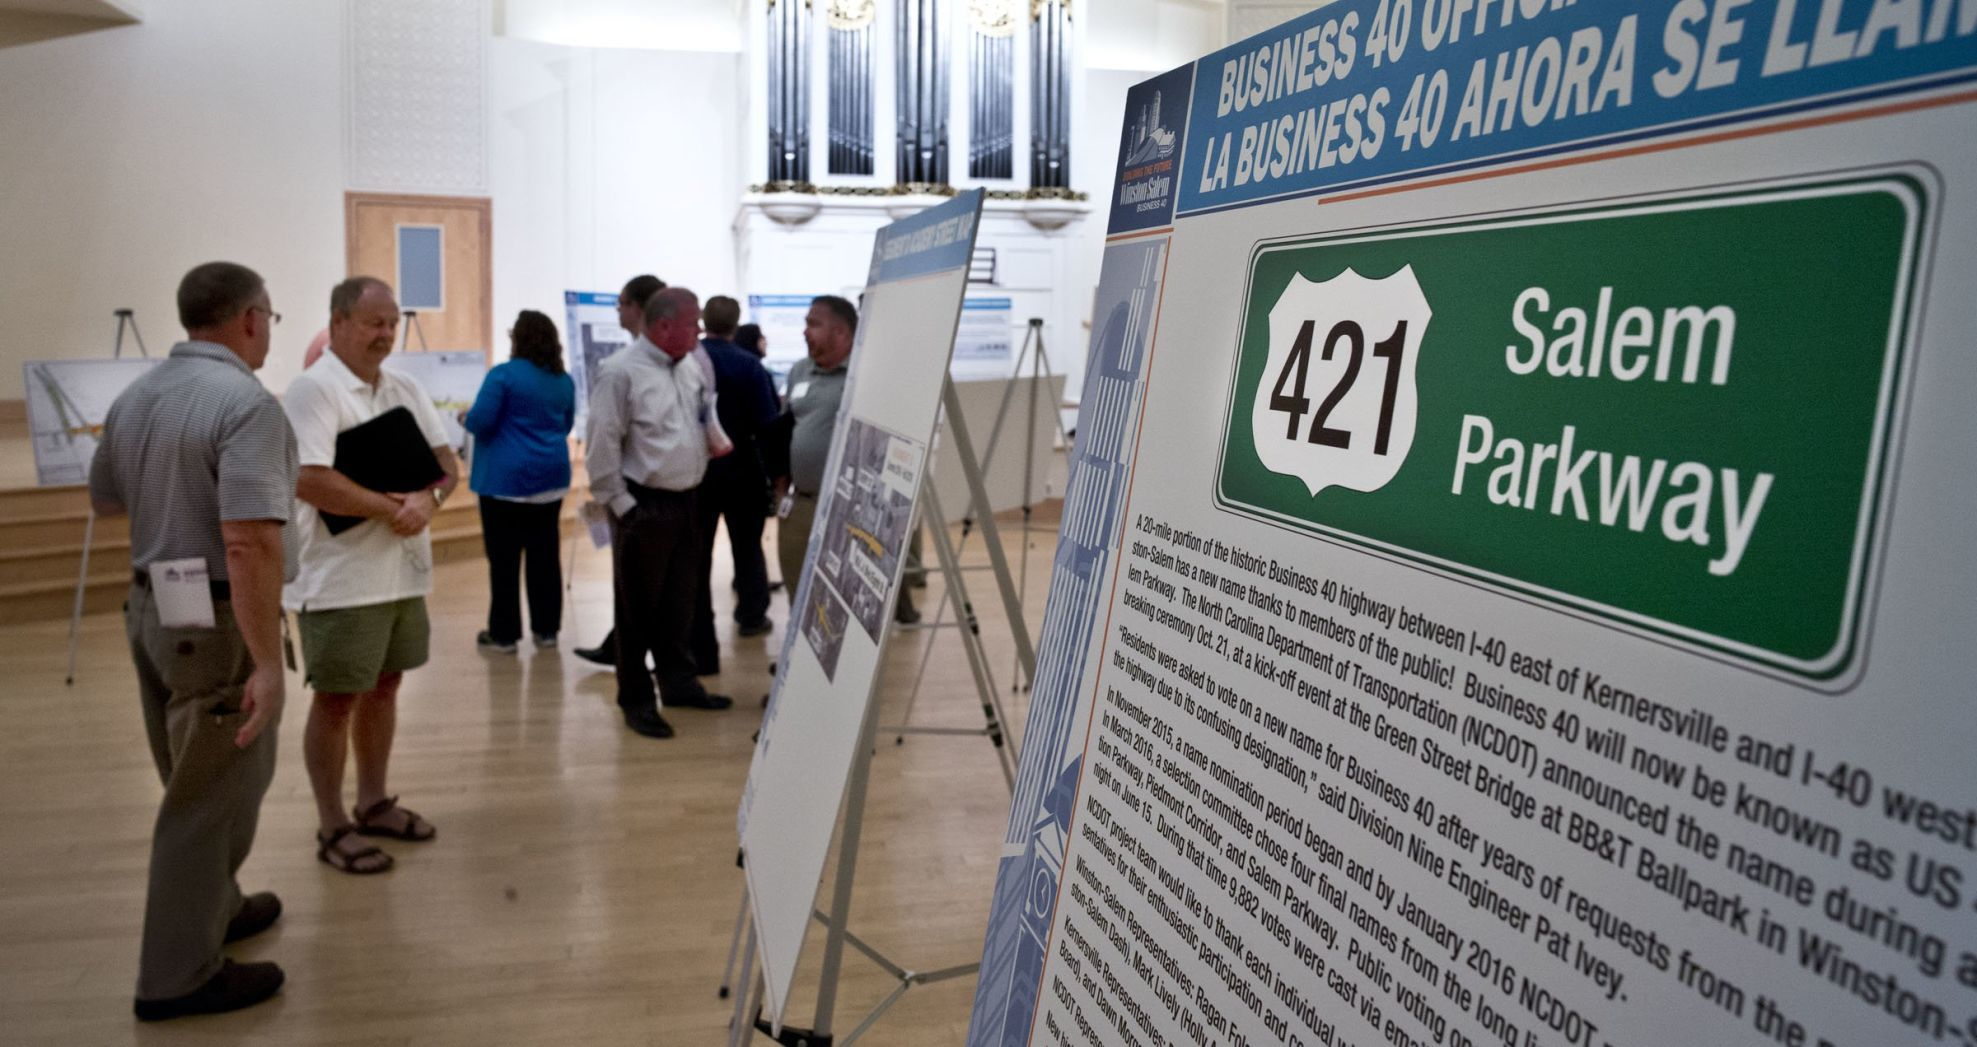 Last drop-in meeting on the closure of Business 40 is tonight   Winston Salem Journal